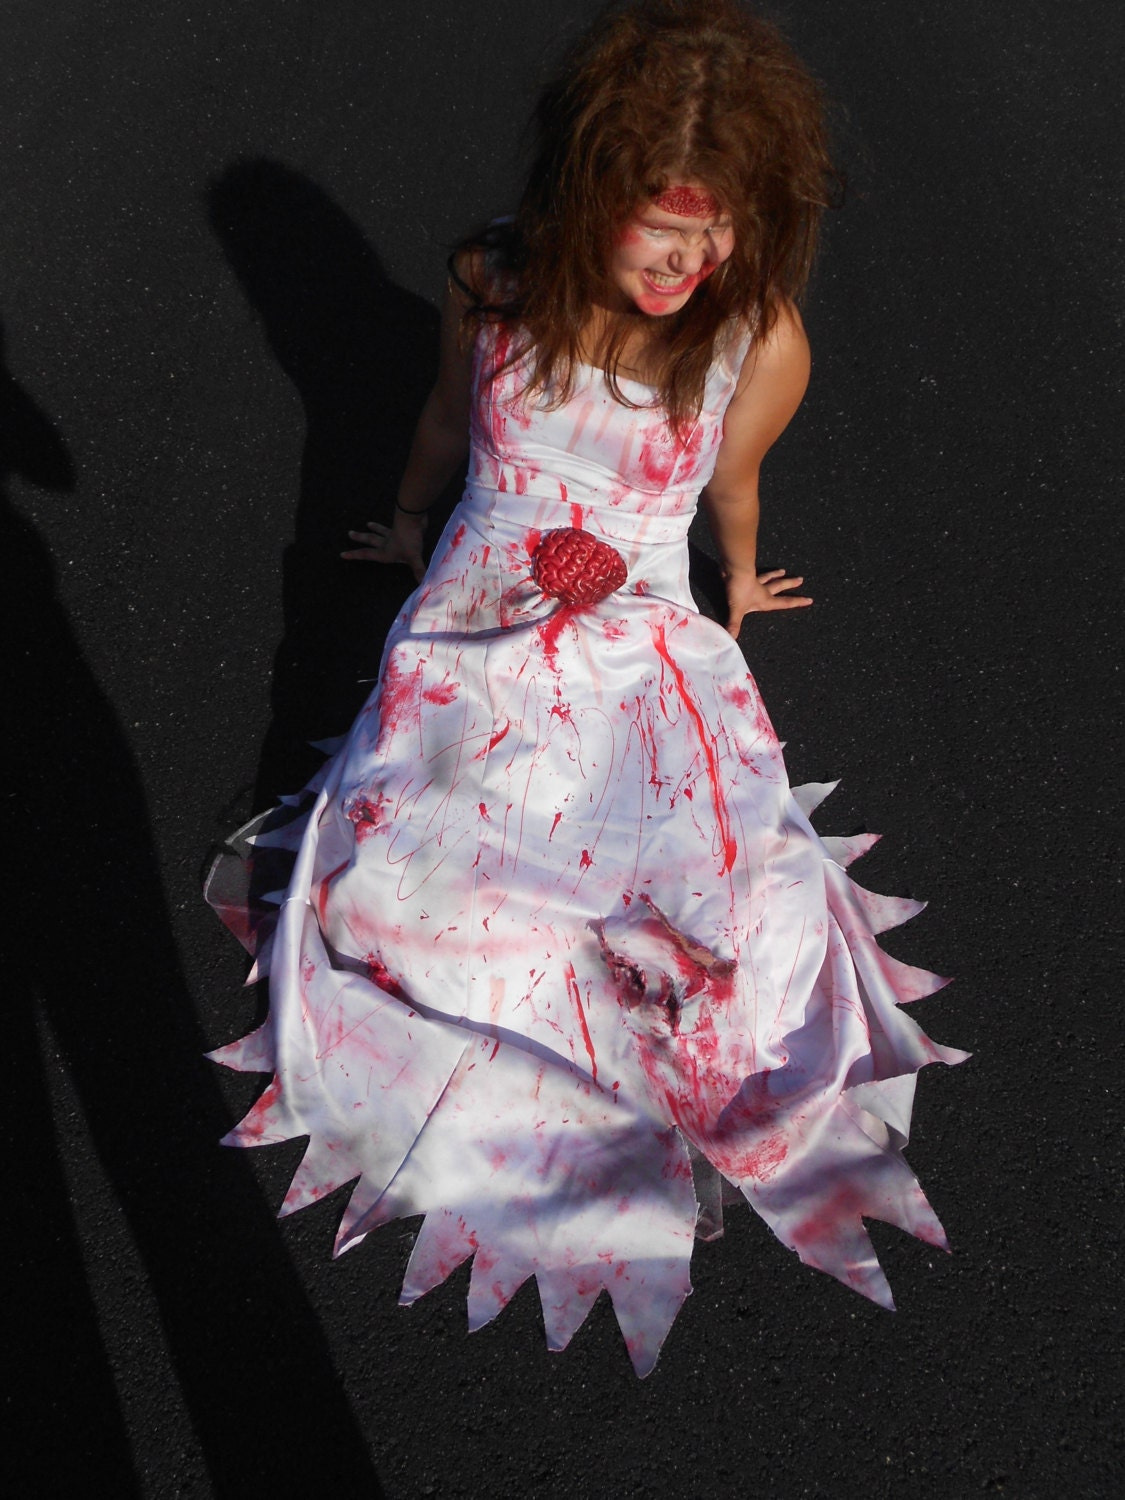 Zombie Wedding Dress For  : Zombie wedding dress with headband adult by loveancare